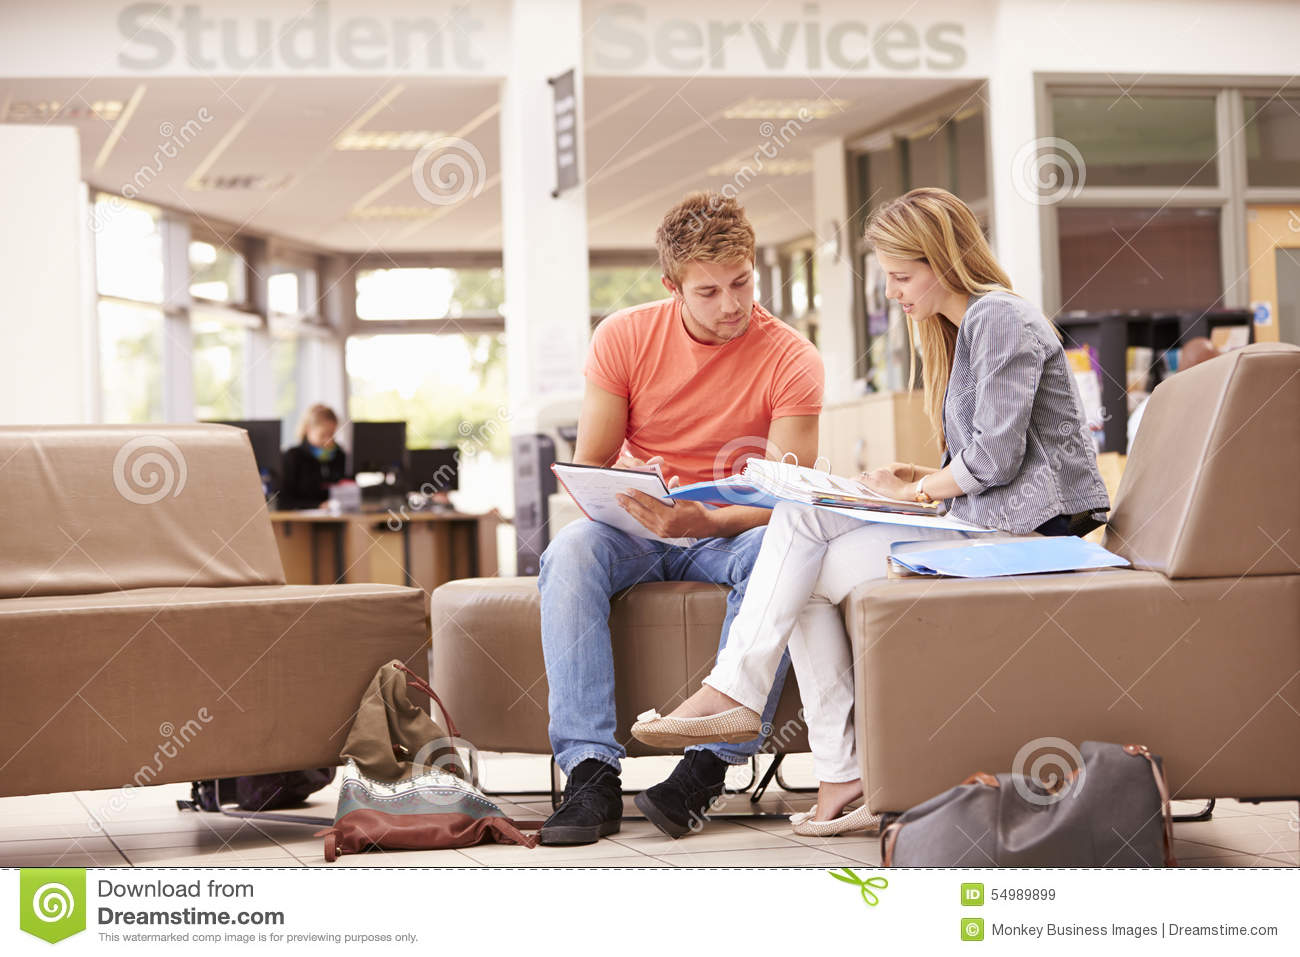 problems of the working college student There is no substitute for hard work-thomas a edison working while in college gives you a different perspective on the college experience ranging from friends to classes to jobs, all.